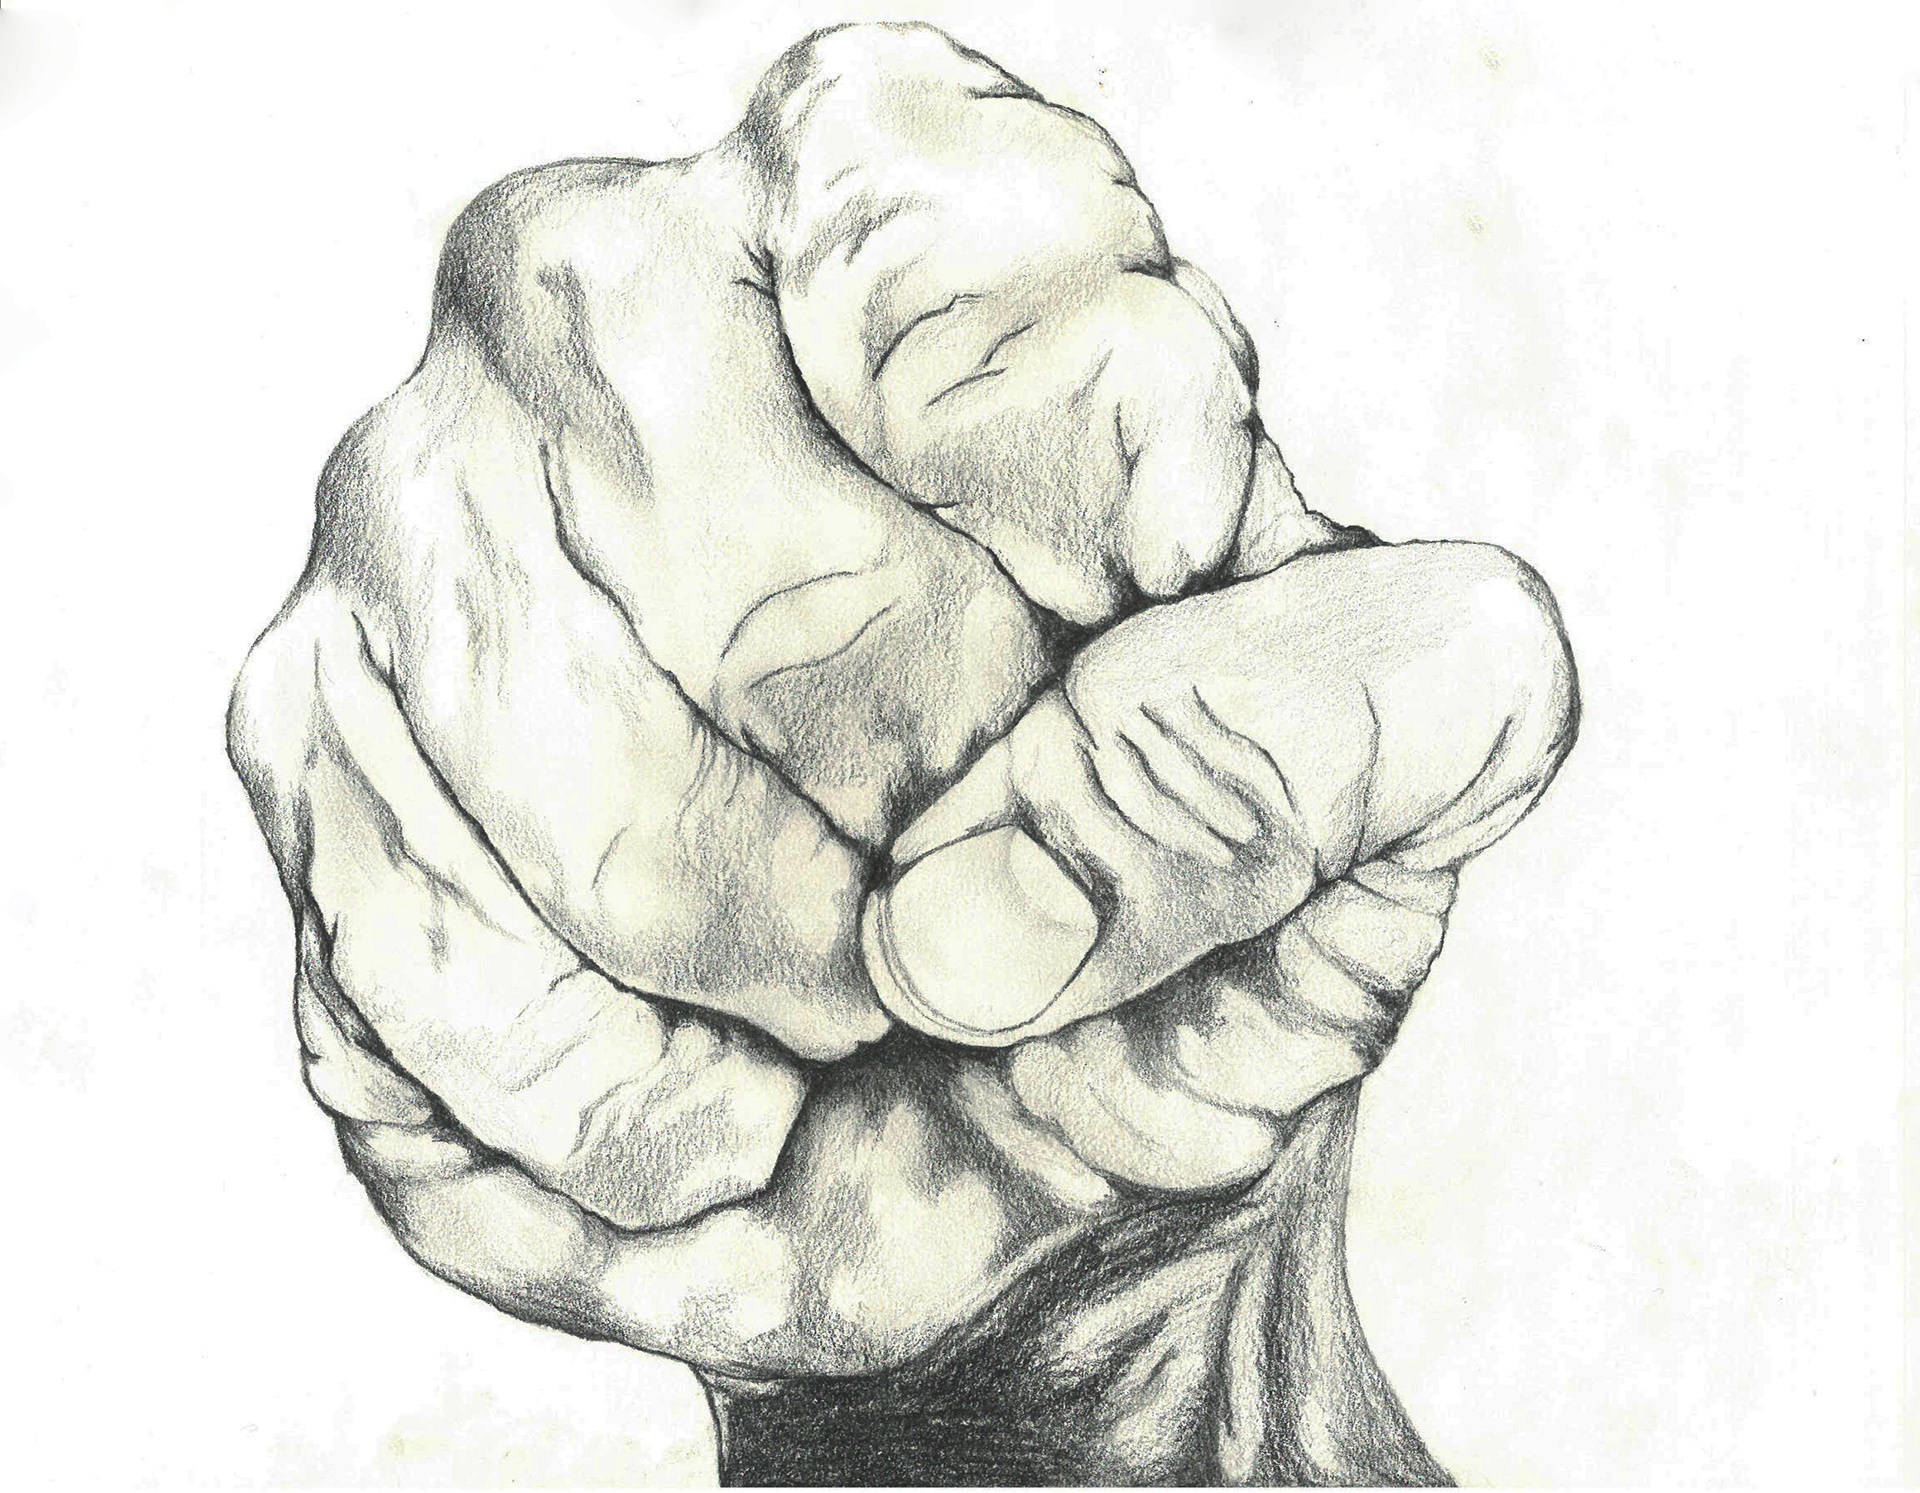 Fist pencil drawing